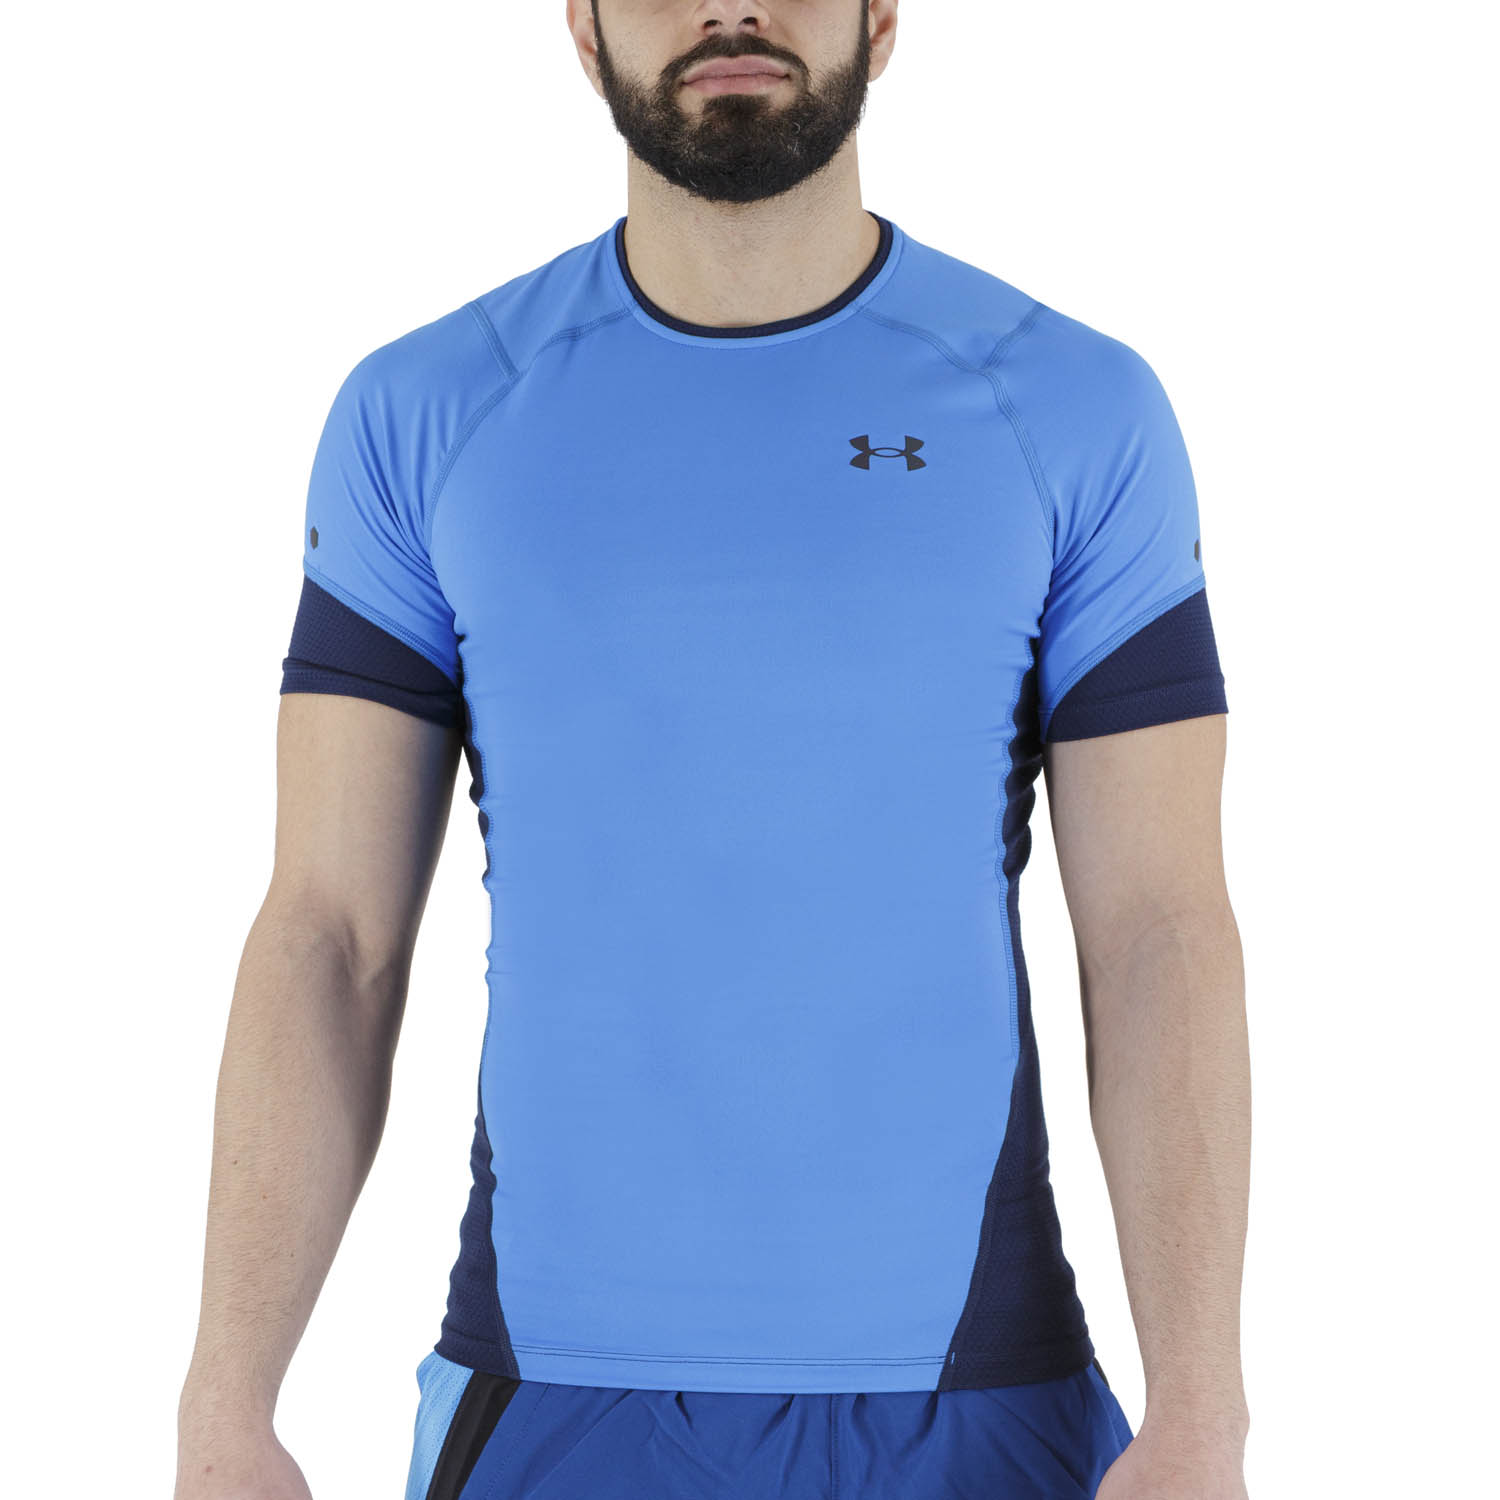 Under Armour Rush HeatGear 2.0 T-Shirt - Blue Circuit